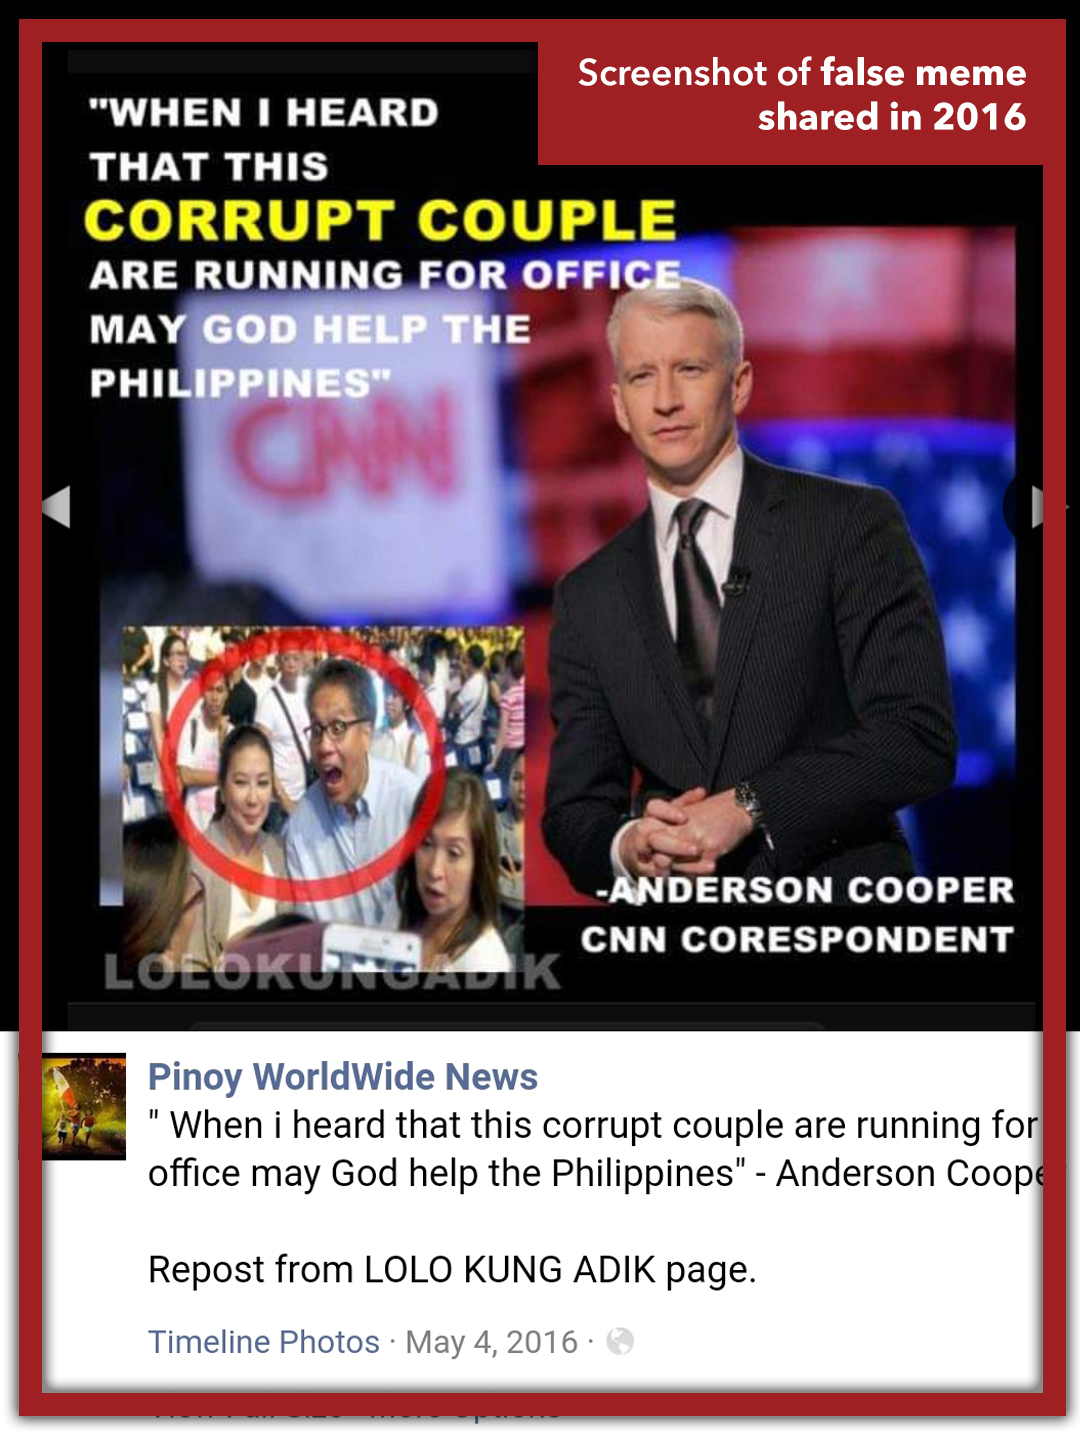 ORIGINALLY SHARED IN 2016. The meme was from two years ago, circulated during the 2016 elections where Roxas ran for presidency